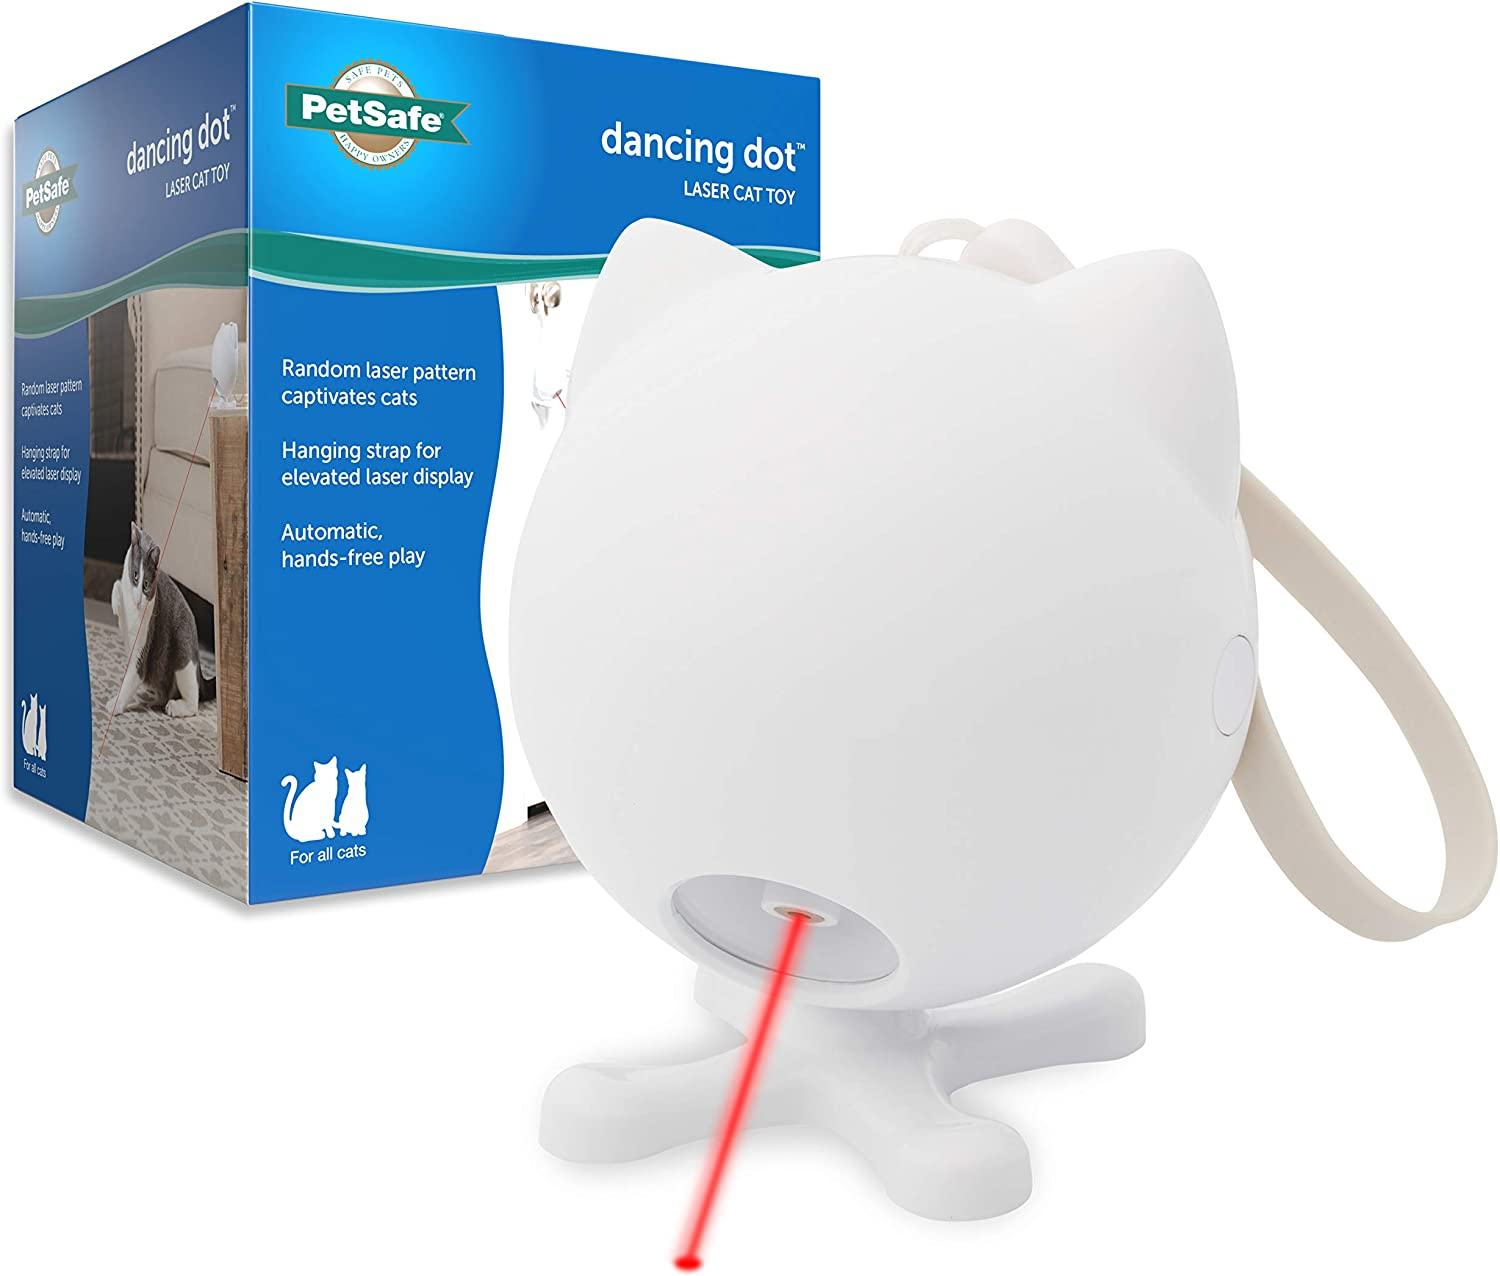 PetSafe Dancing Dot - Interactive Laser Cat Toy - 2 Play Modes - Works Great on Elevated Surfaces : Pet Supplies